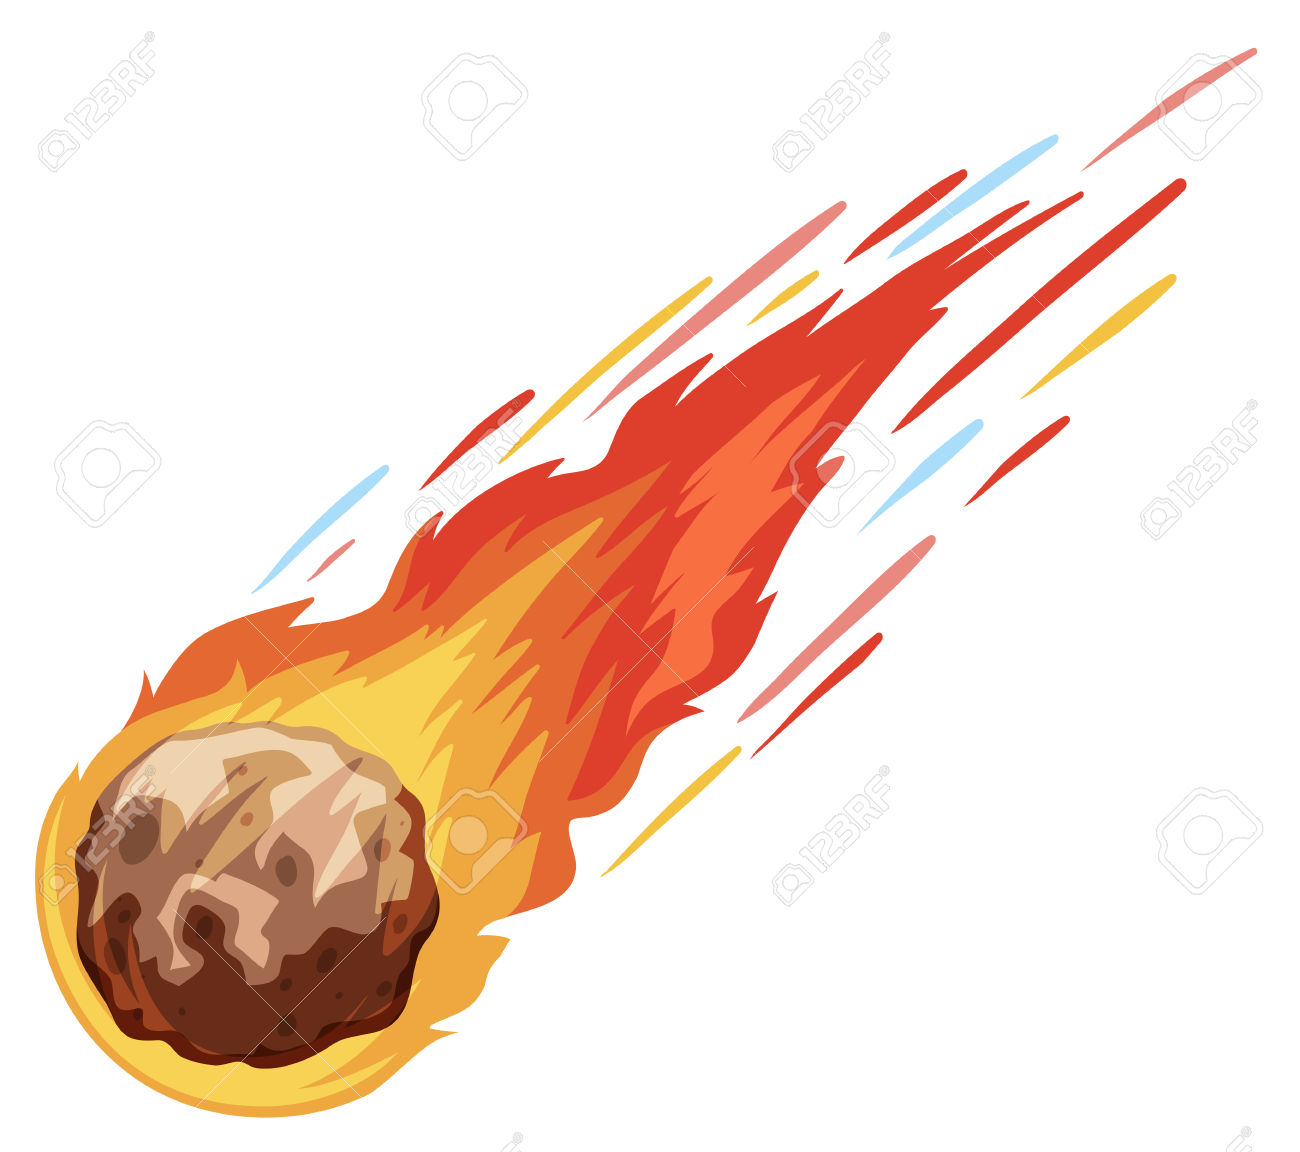 Asteroid clipart comet. Free download best on